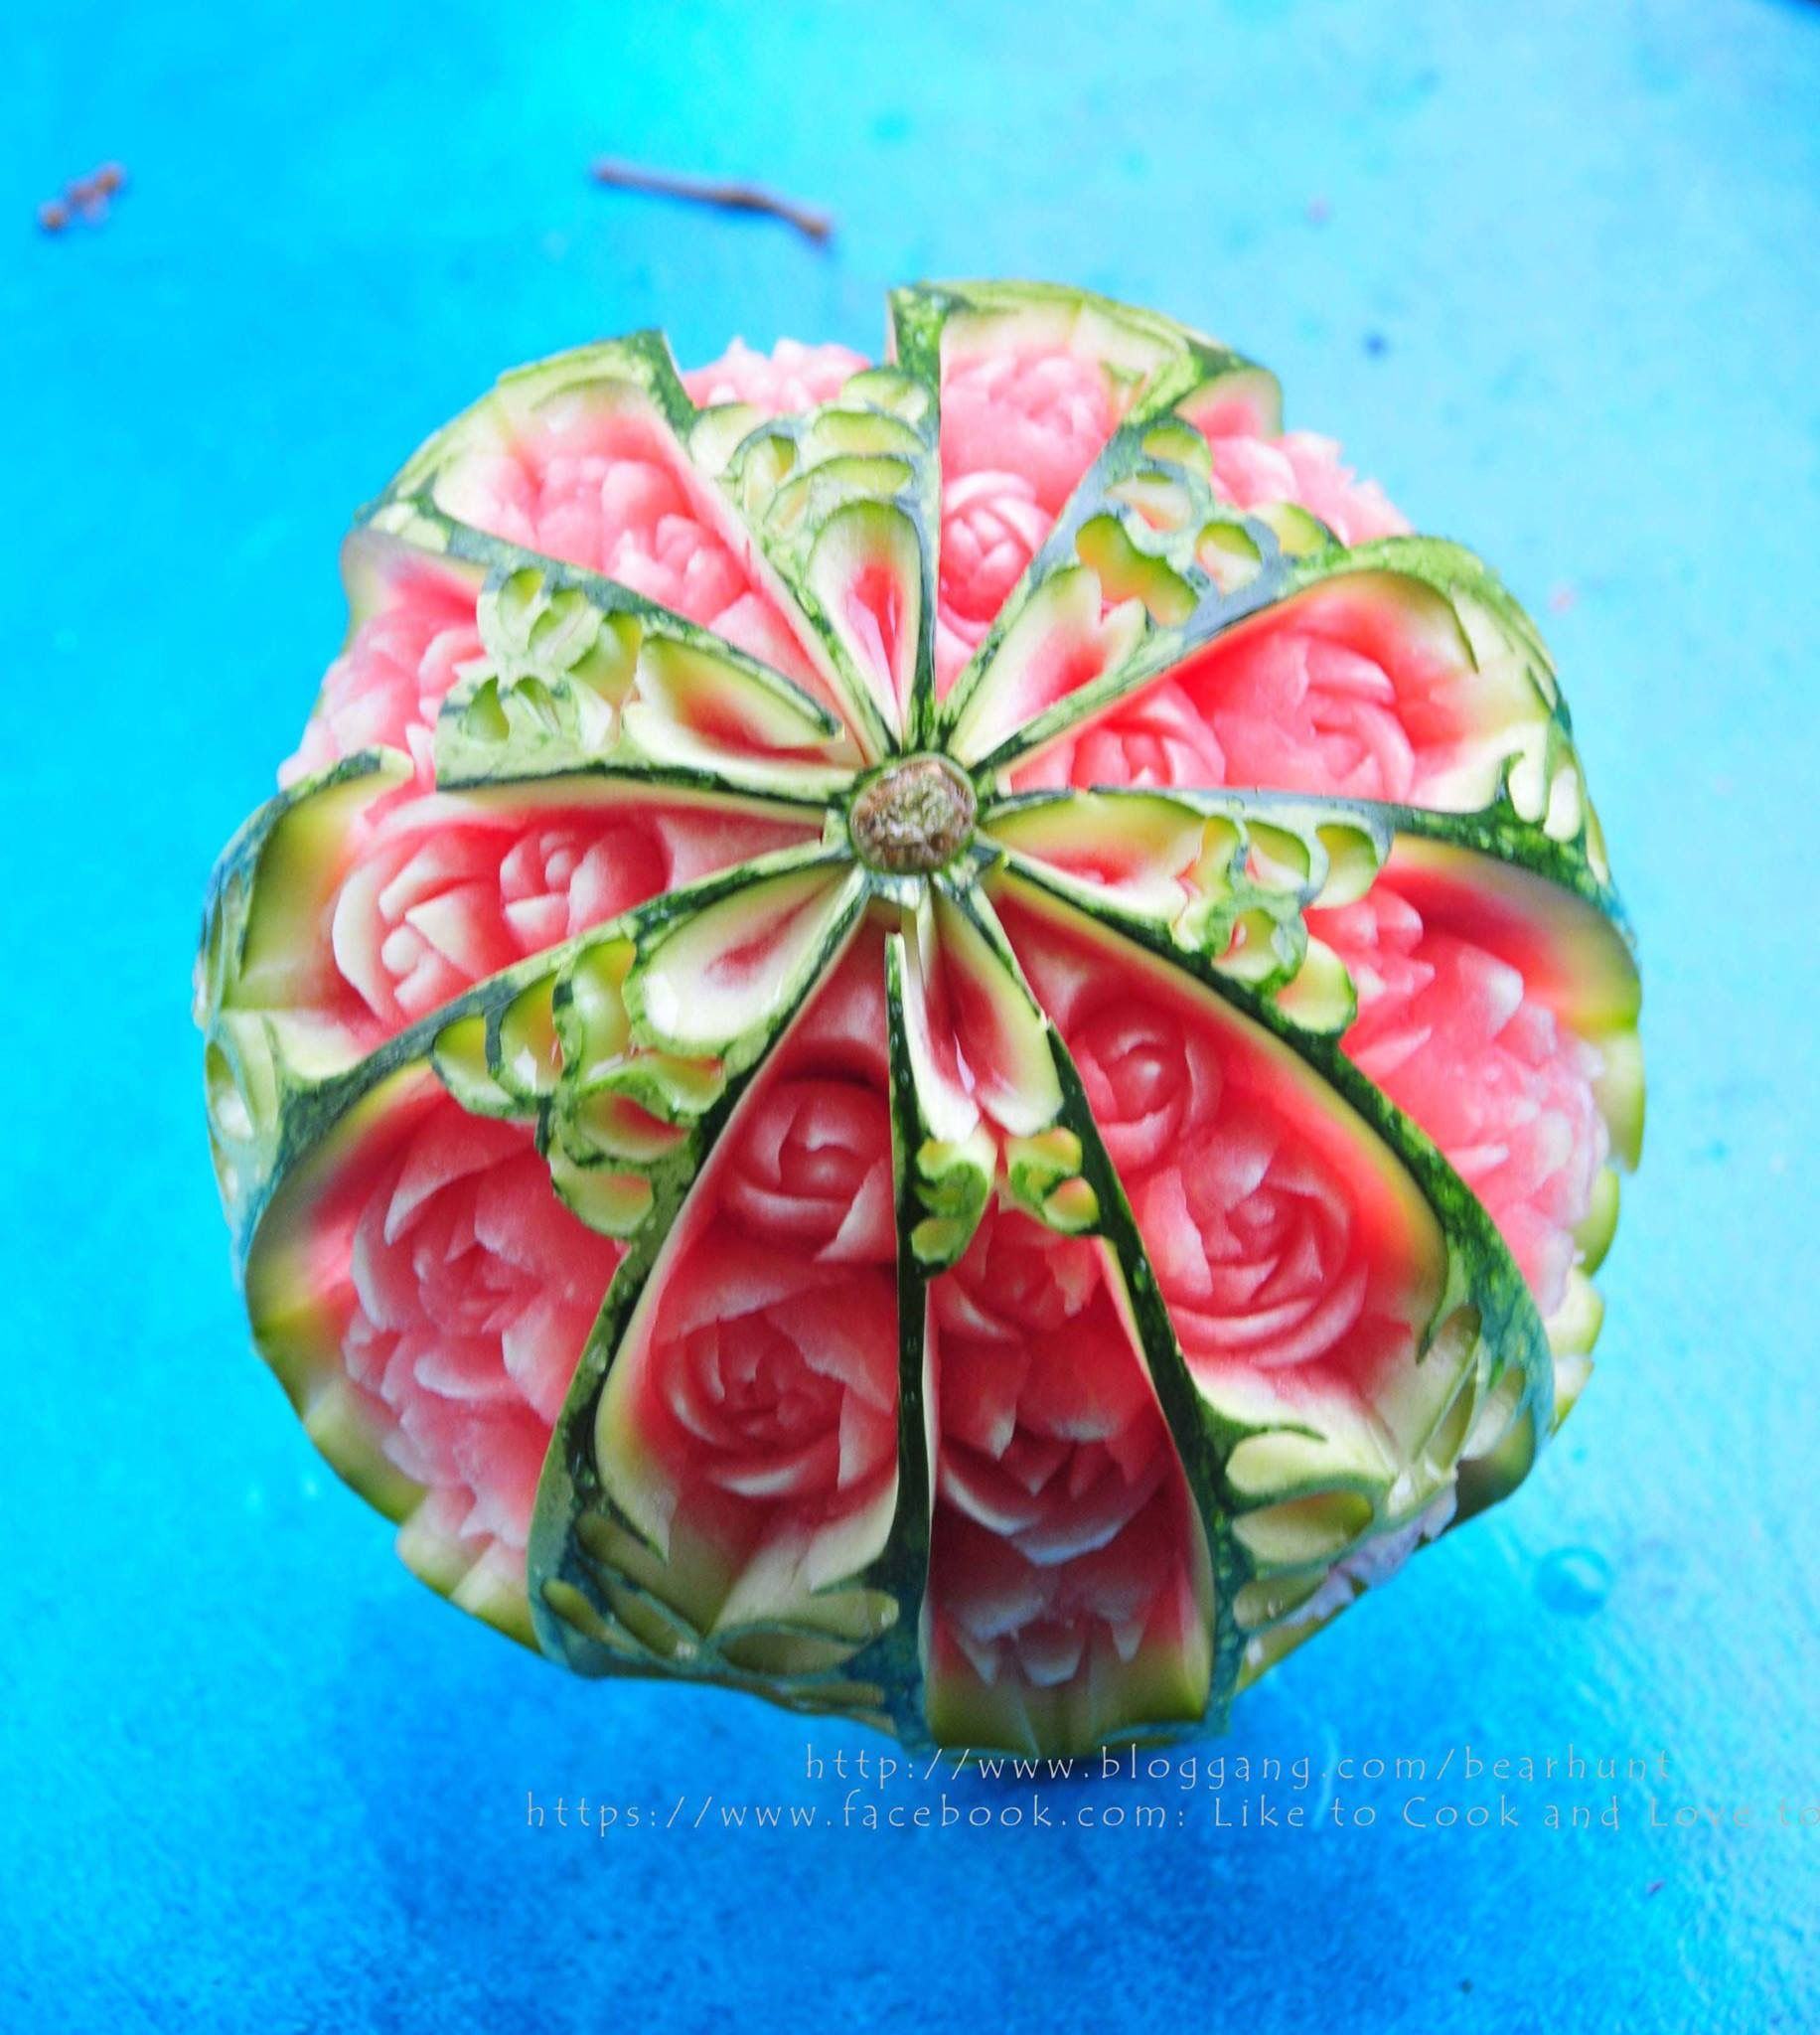 Watermelon carving food art pinterest watermelon carving and